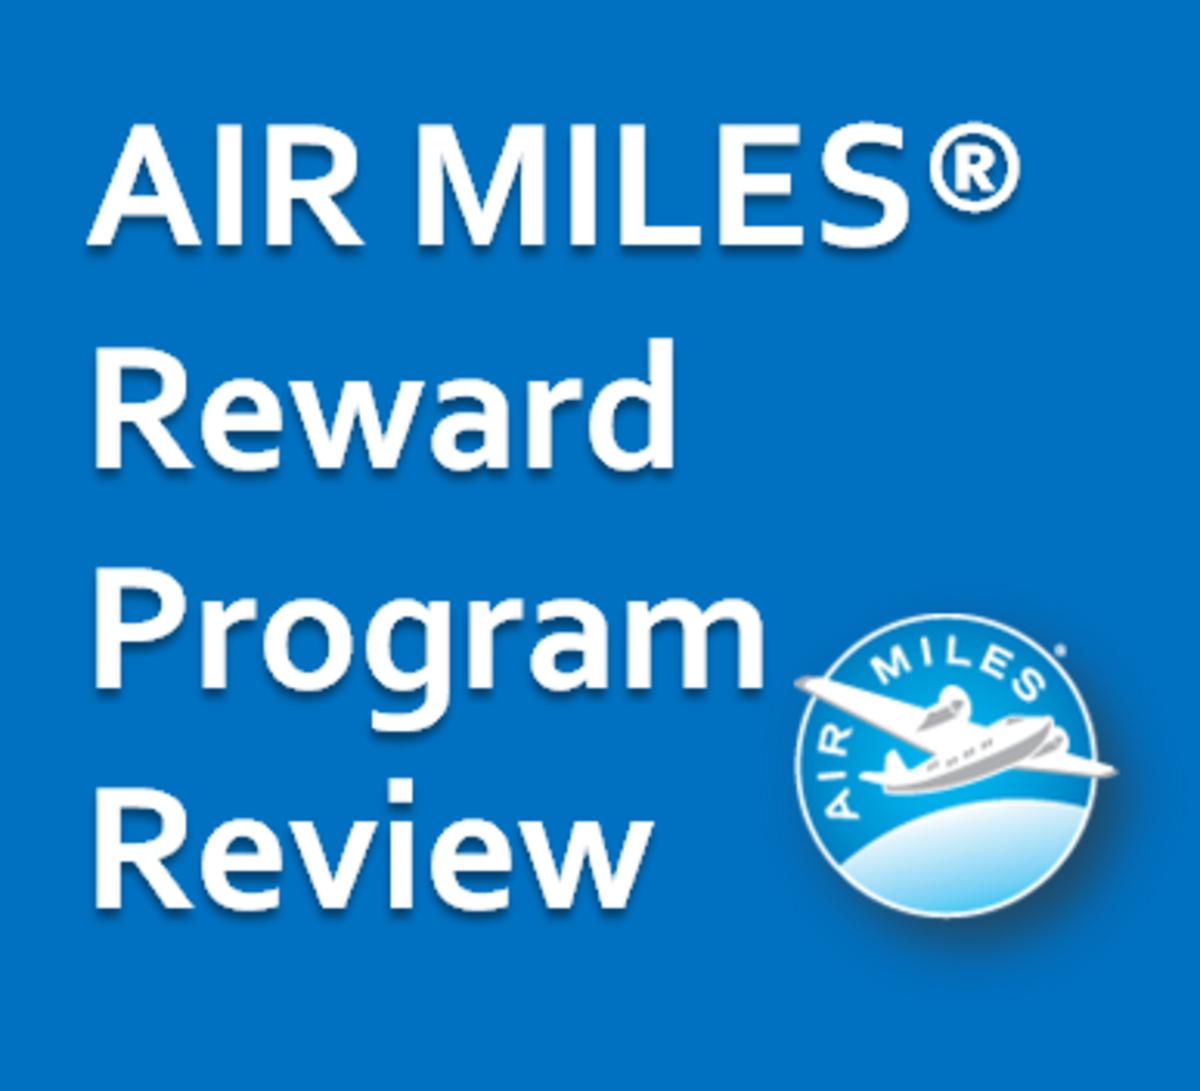 AIR MILES is a registered trademark. Logo and screenshots have been used with permission.